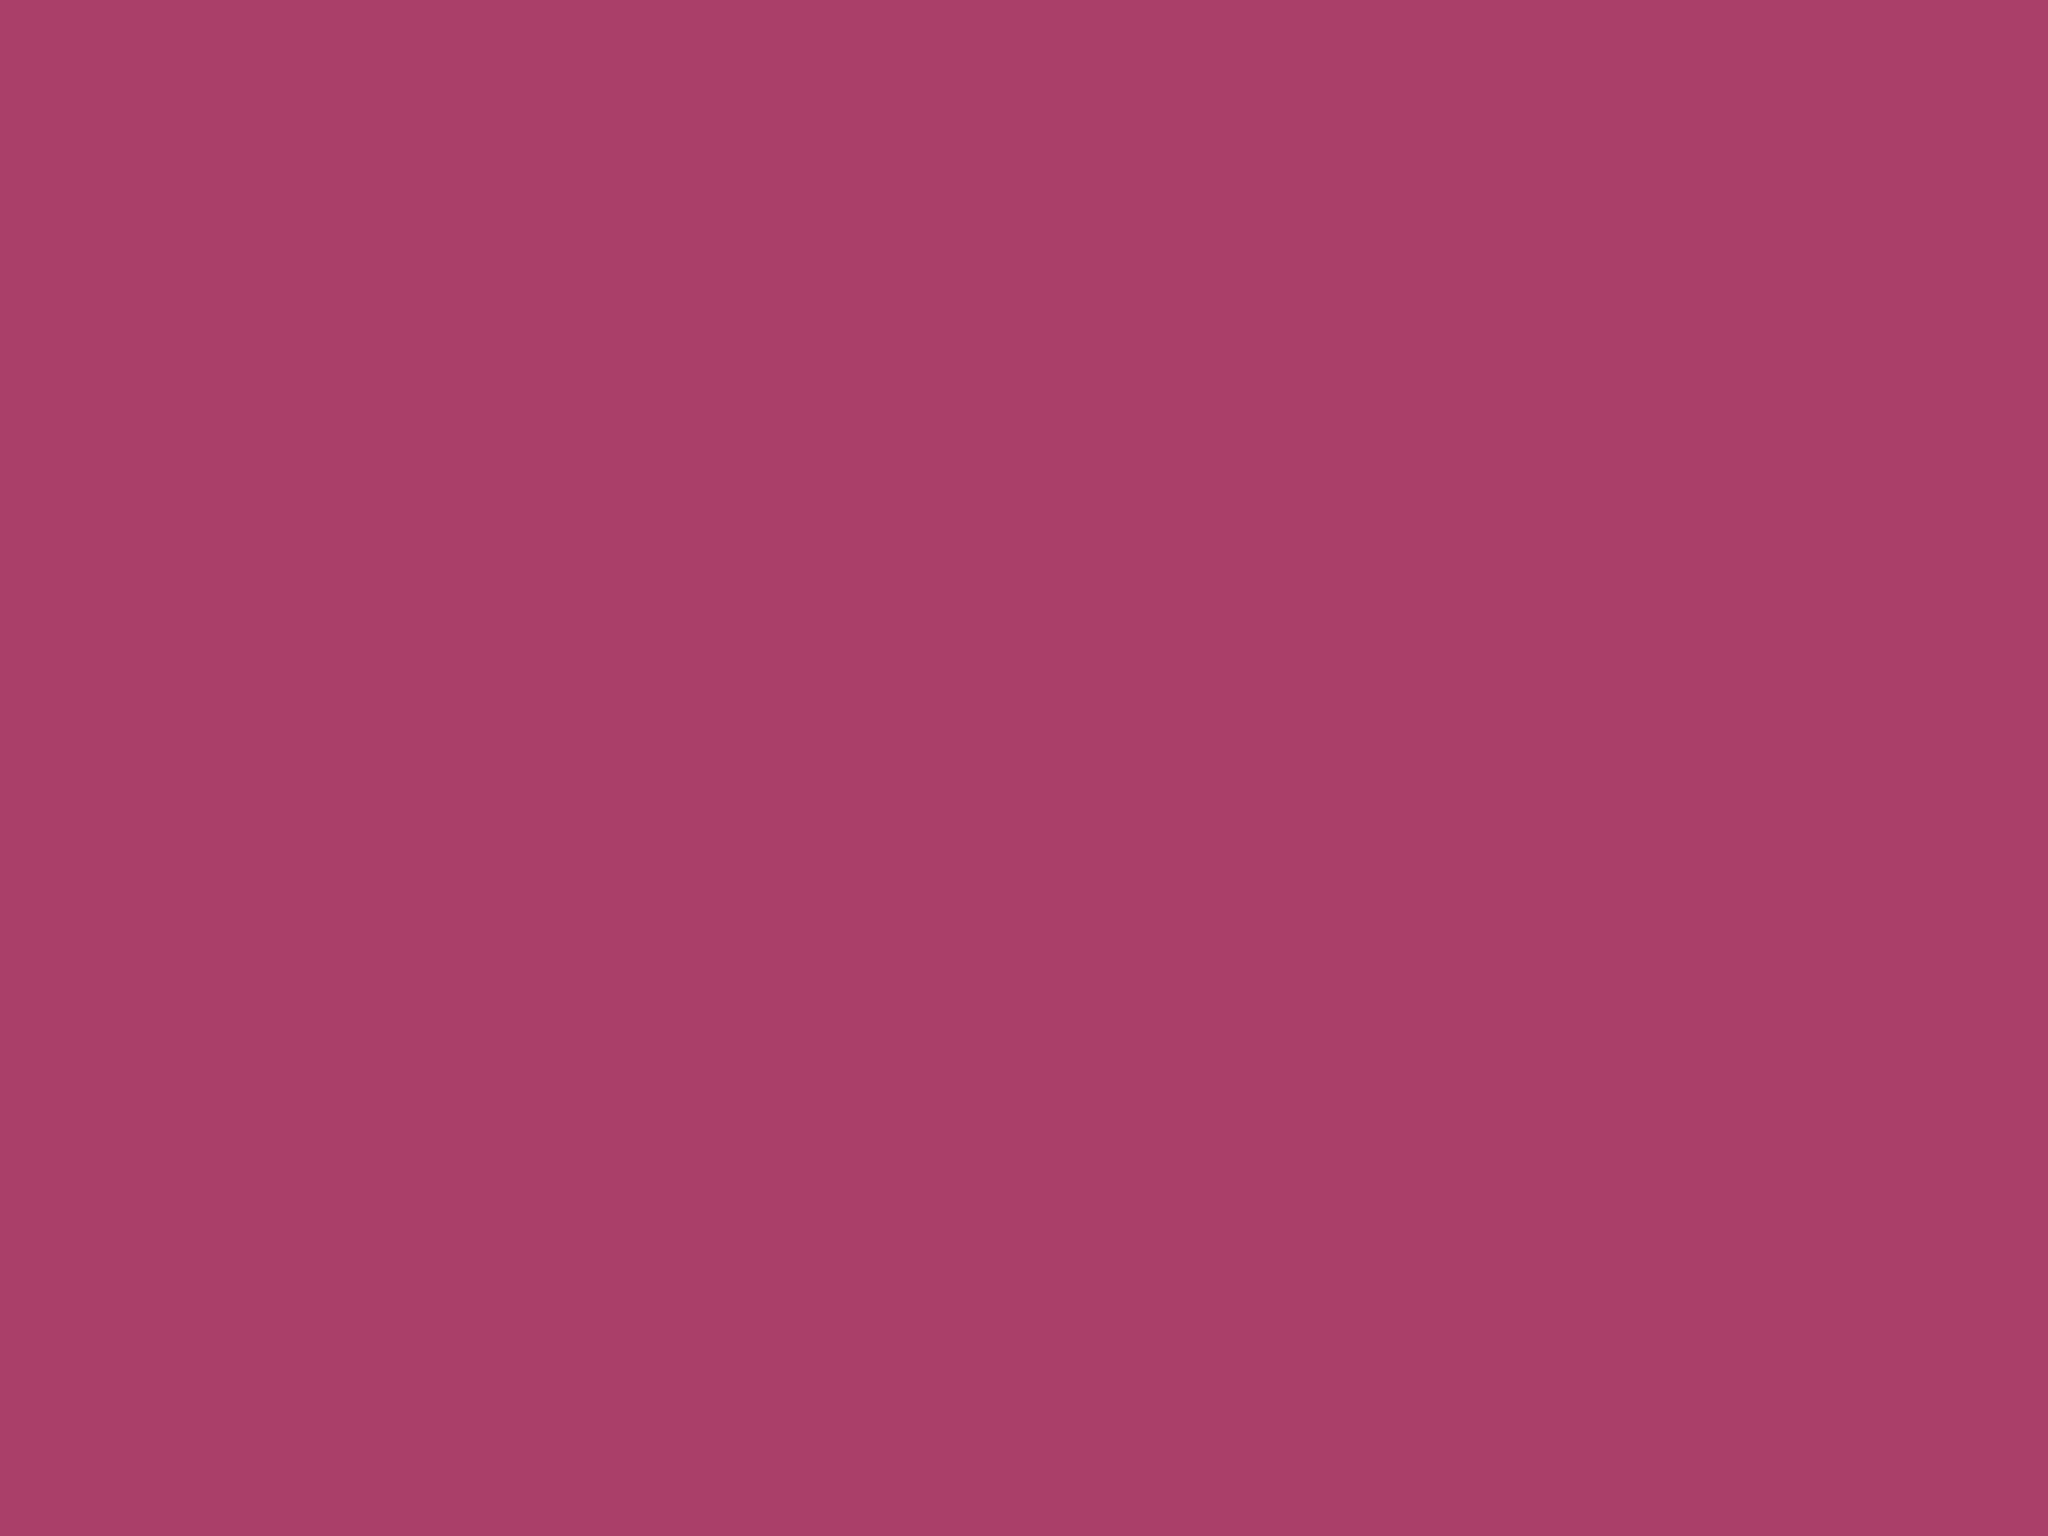 2048x1536 Medium Ruby Solid Color Background